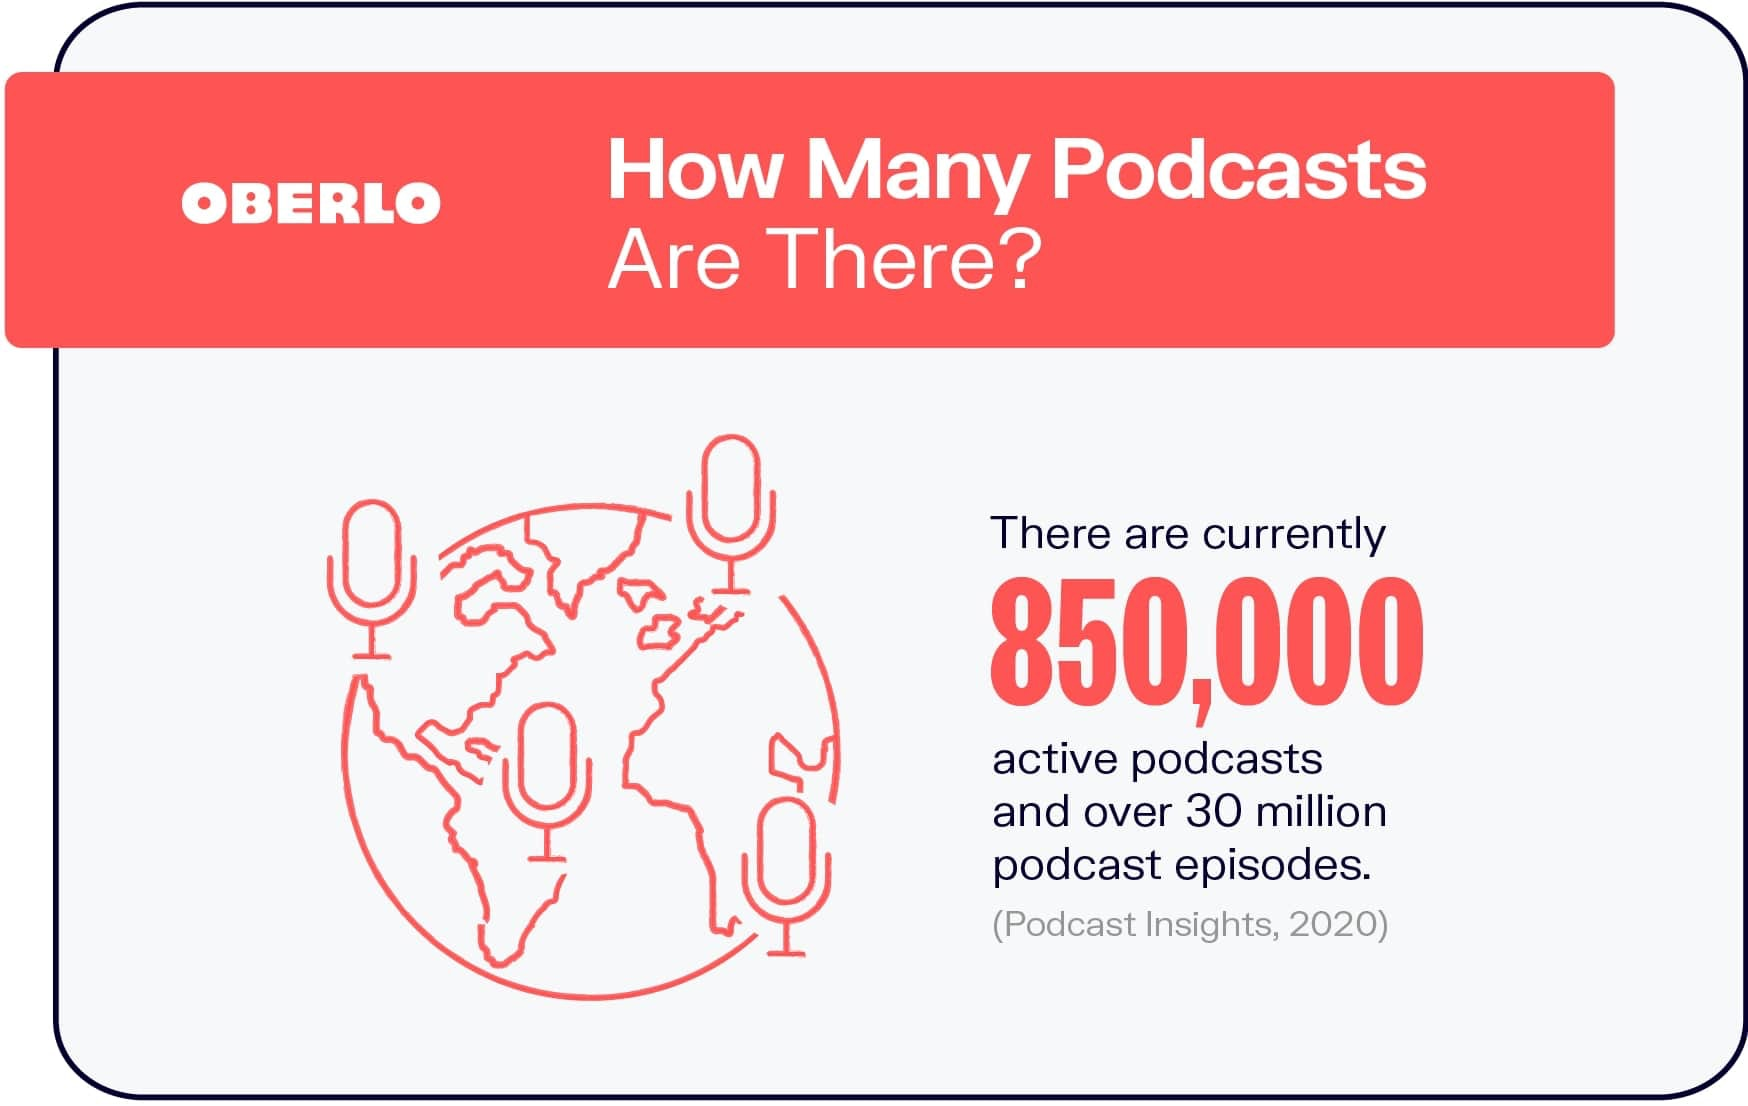 How Many Podcasts Are There?